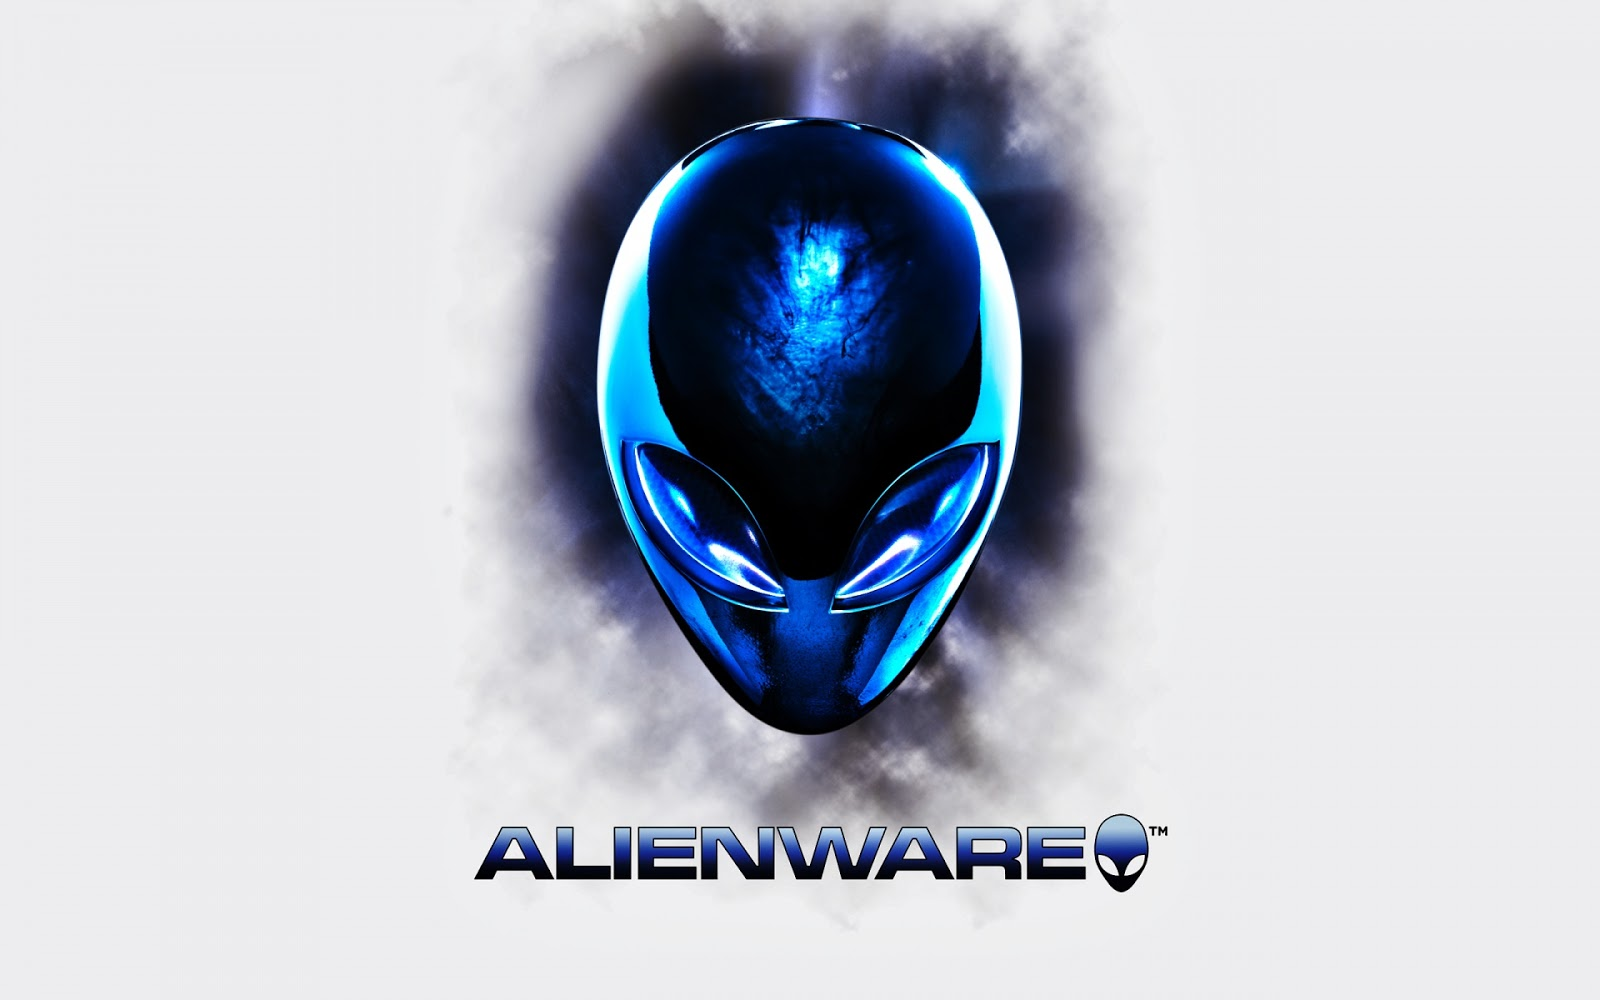 Alienware Blue Download 1920x1200 1600x1000